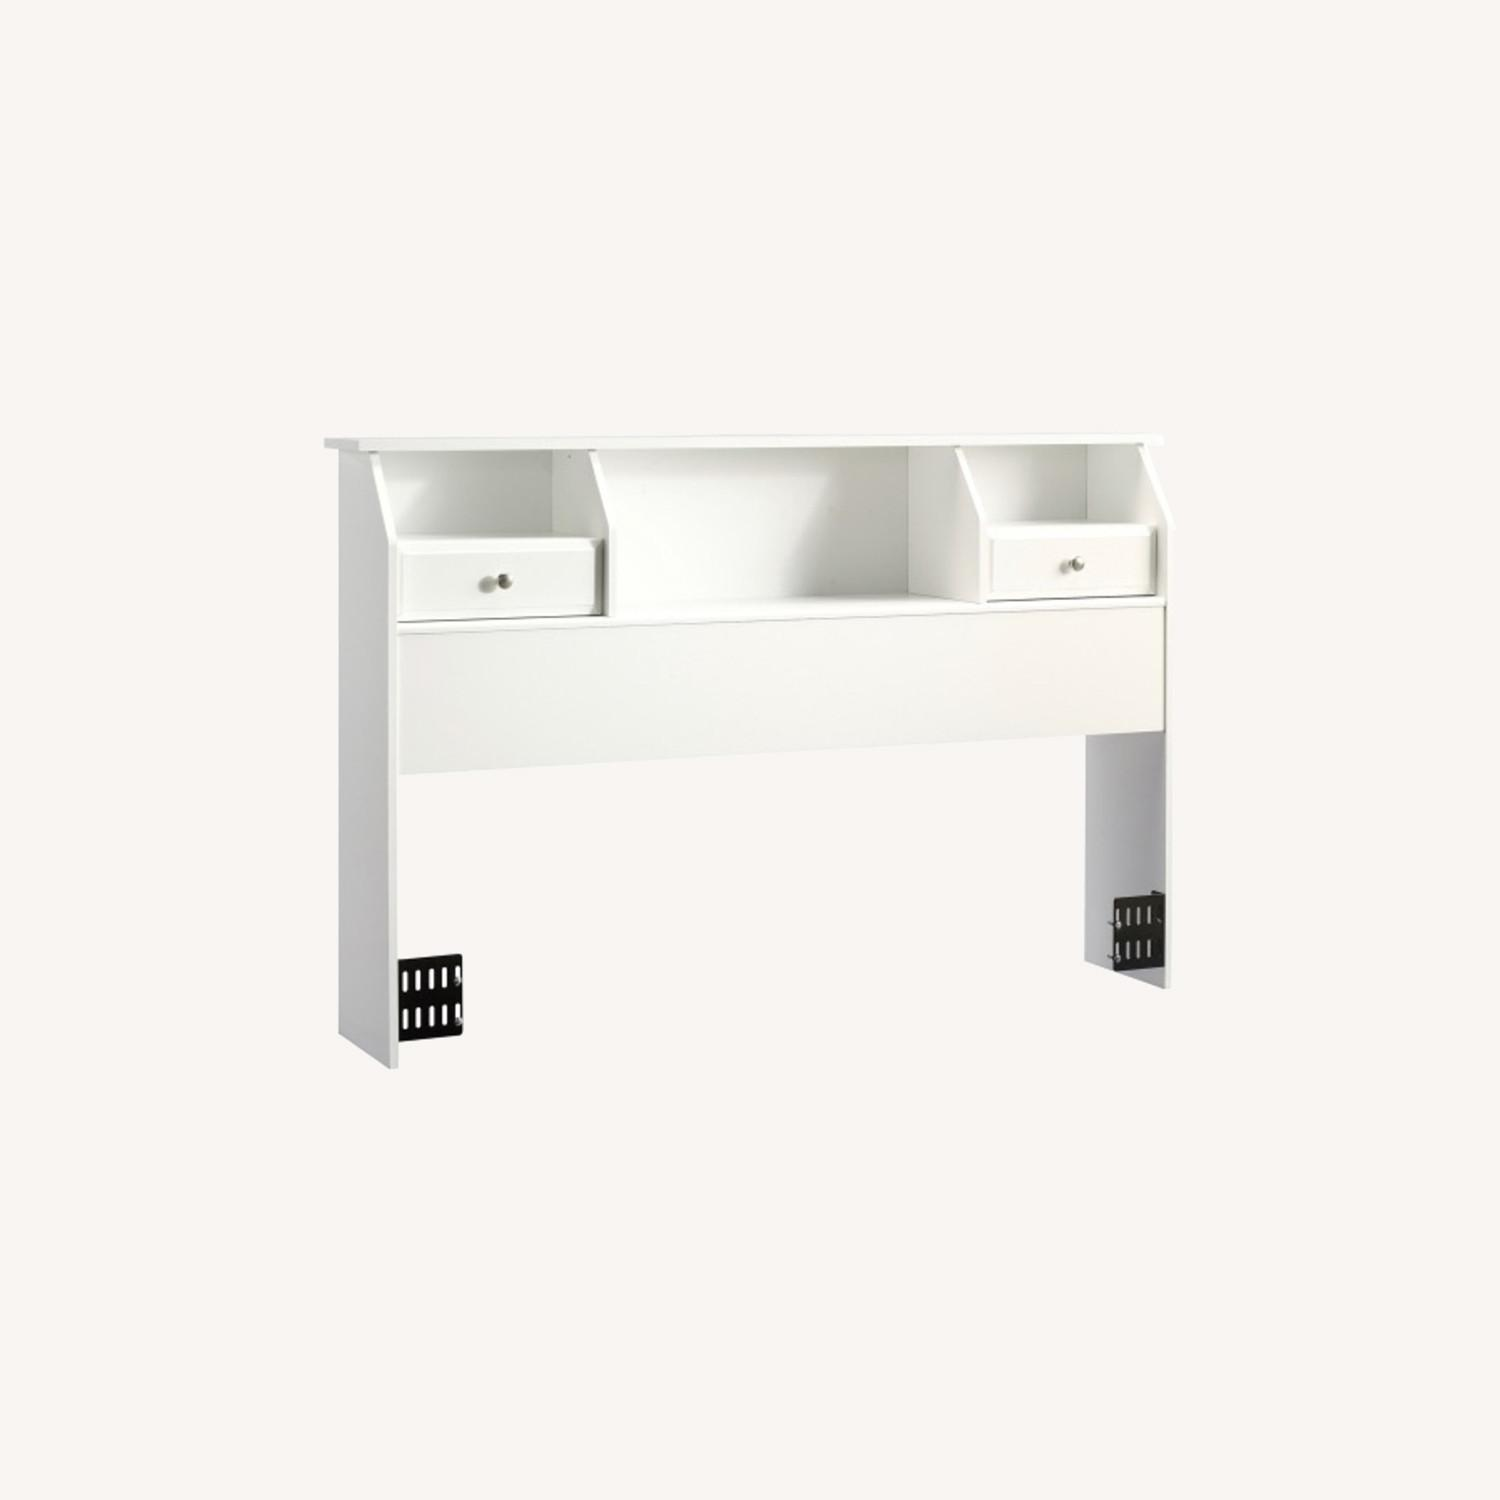 Queen/Full Headboard with Drawers (white wood) - image-0